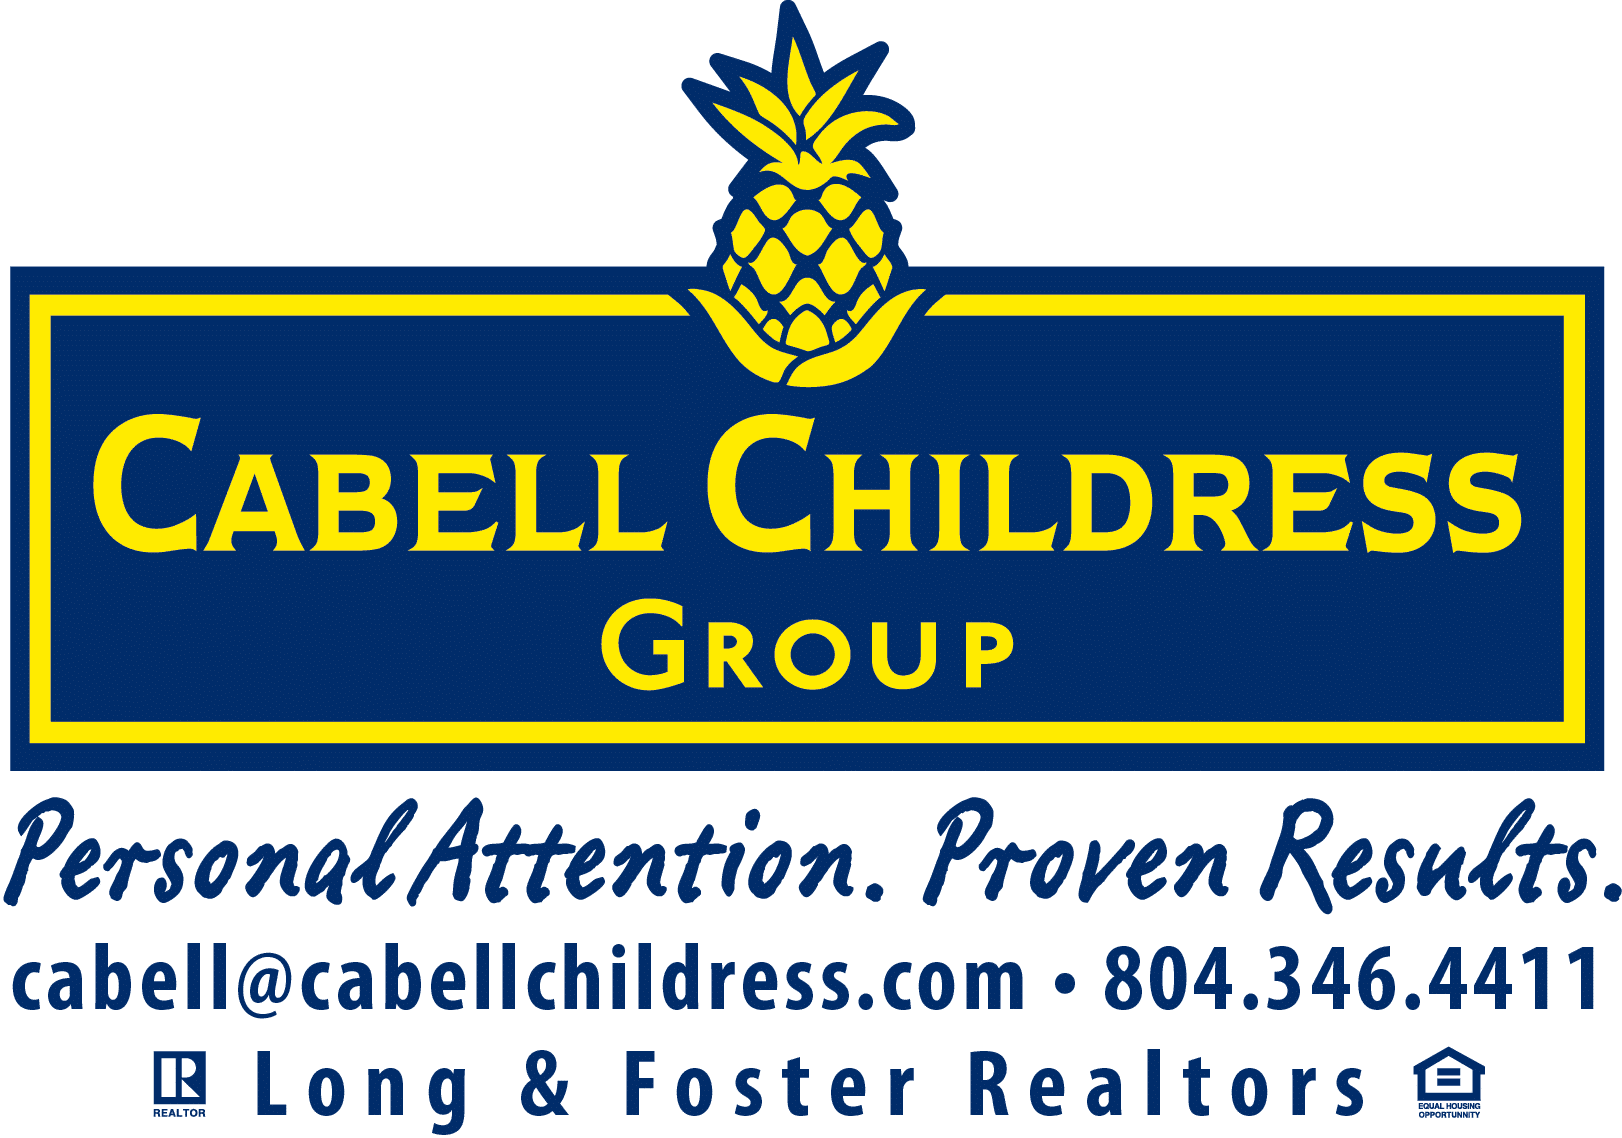 Episode 10 – Movin' on Up w/ Cabell Childress